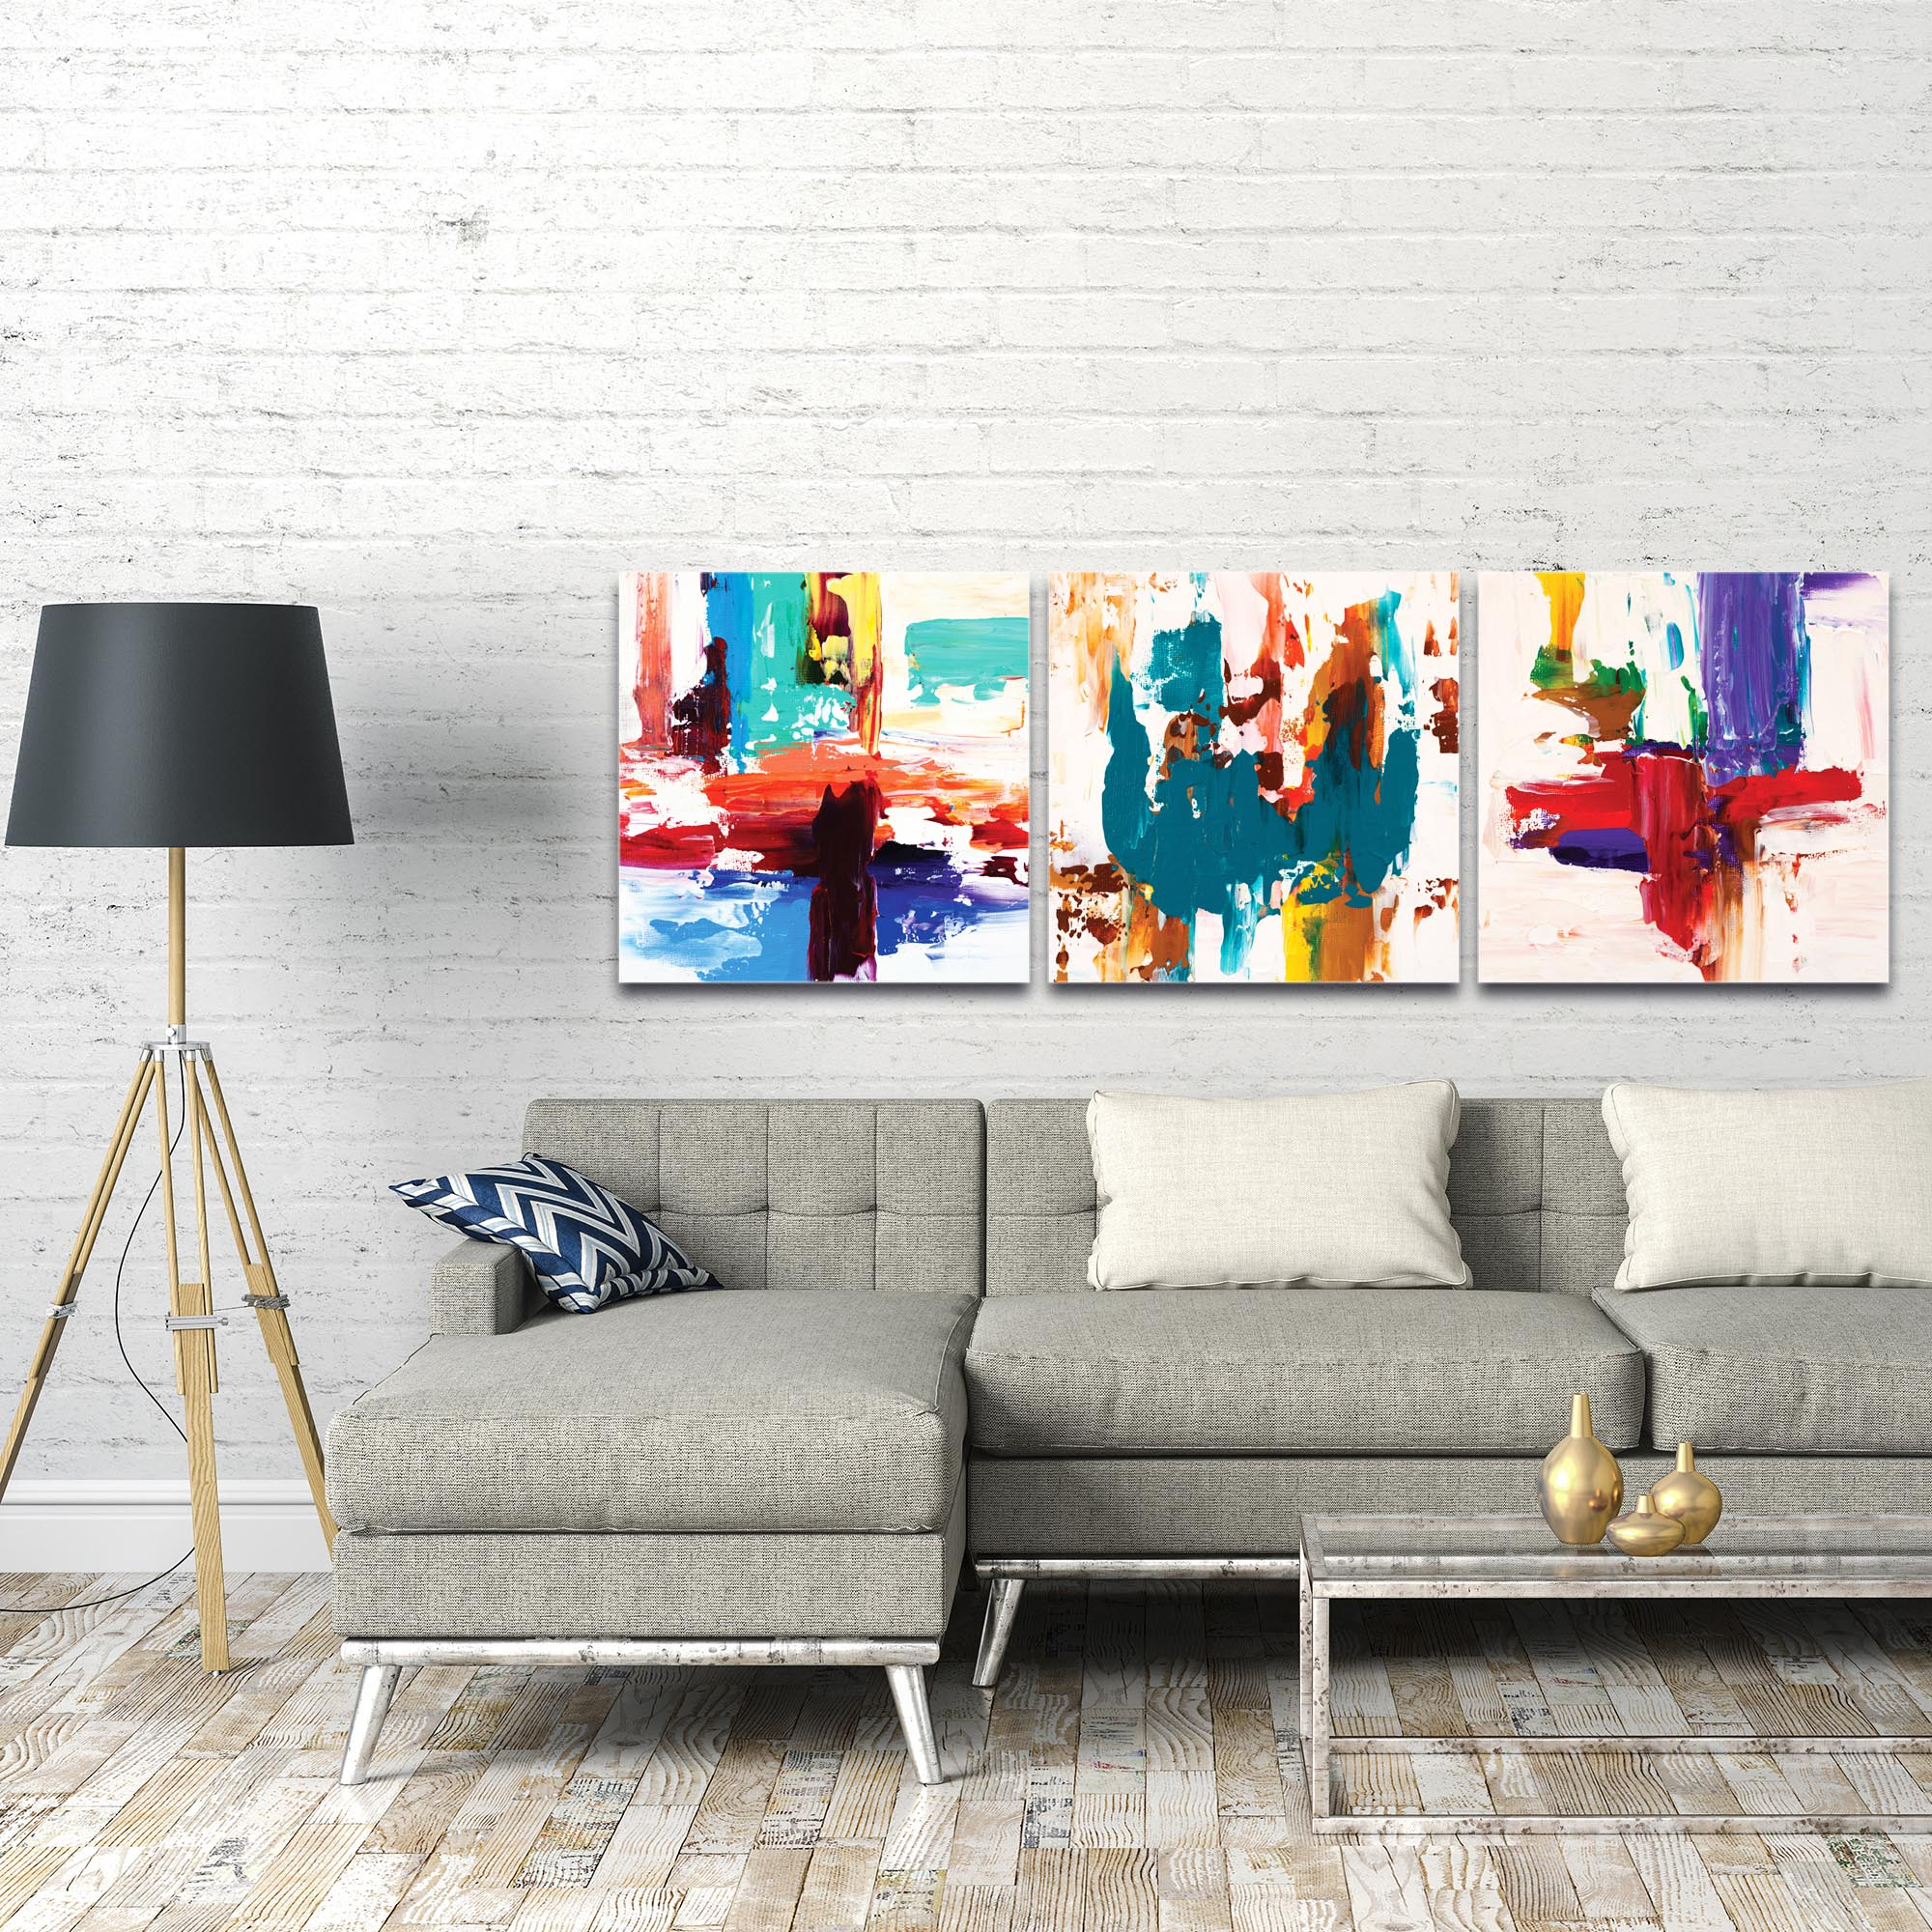 Abstract Wall Art 'Urban Triptych 2 Large' - Urban Decor on Metal or Plexiglass - Image 3